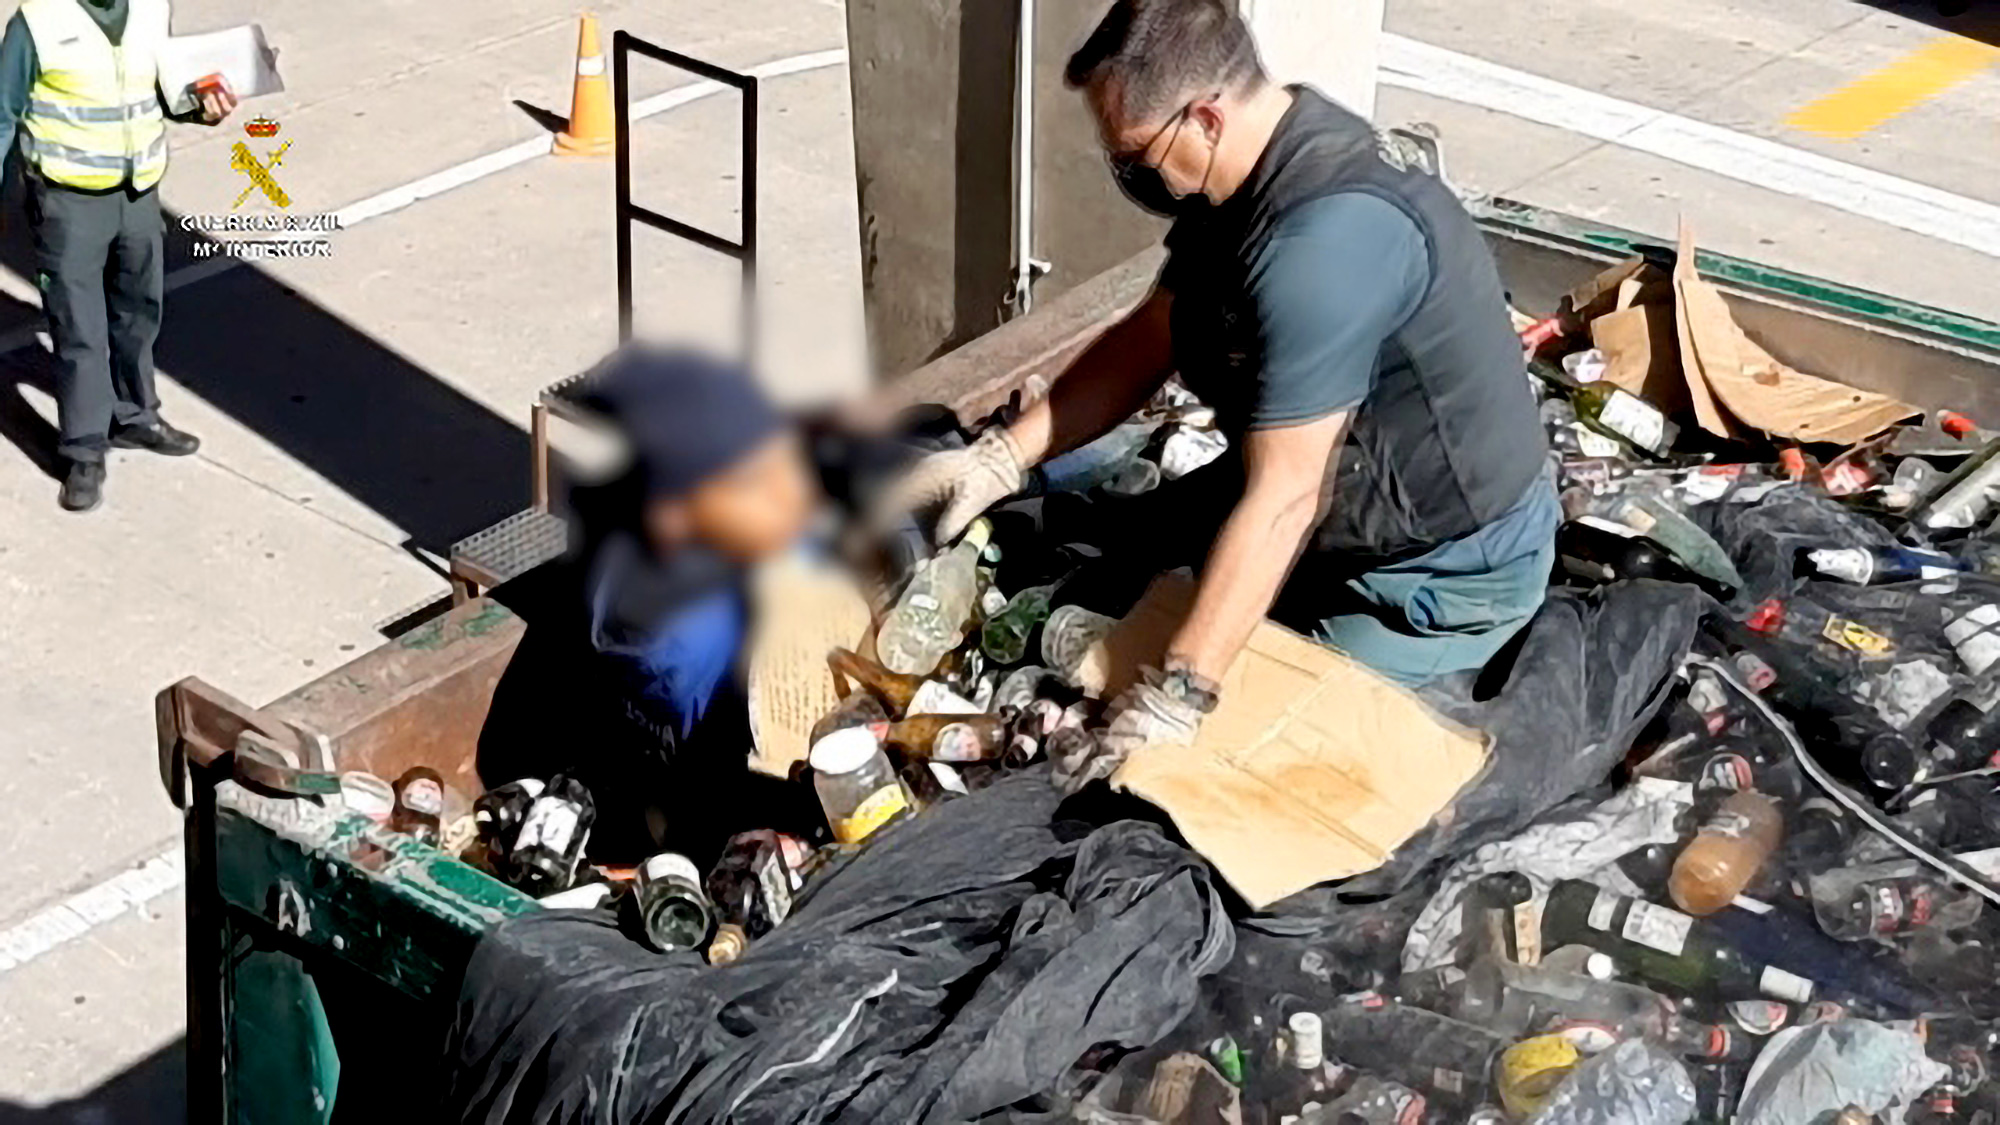 VIDEO: Freecyclers: Migrants Crossing Border Caught Hiding In Green Dump Trucks